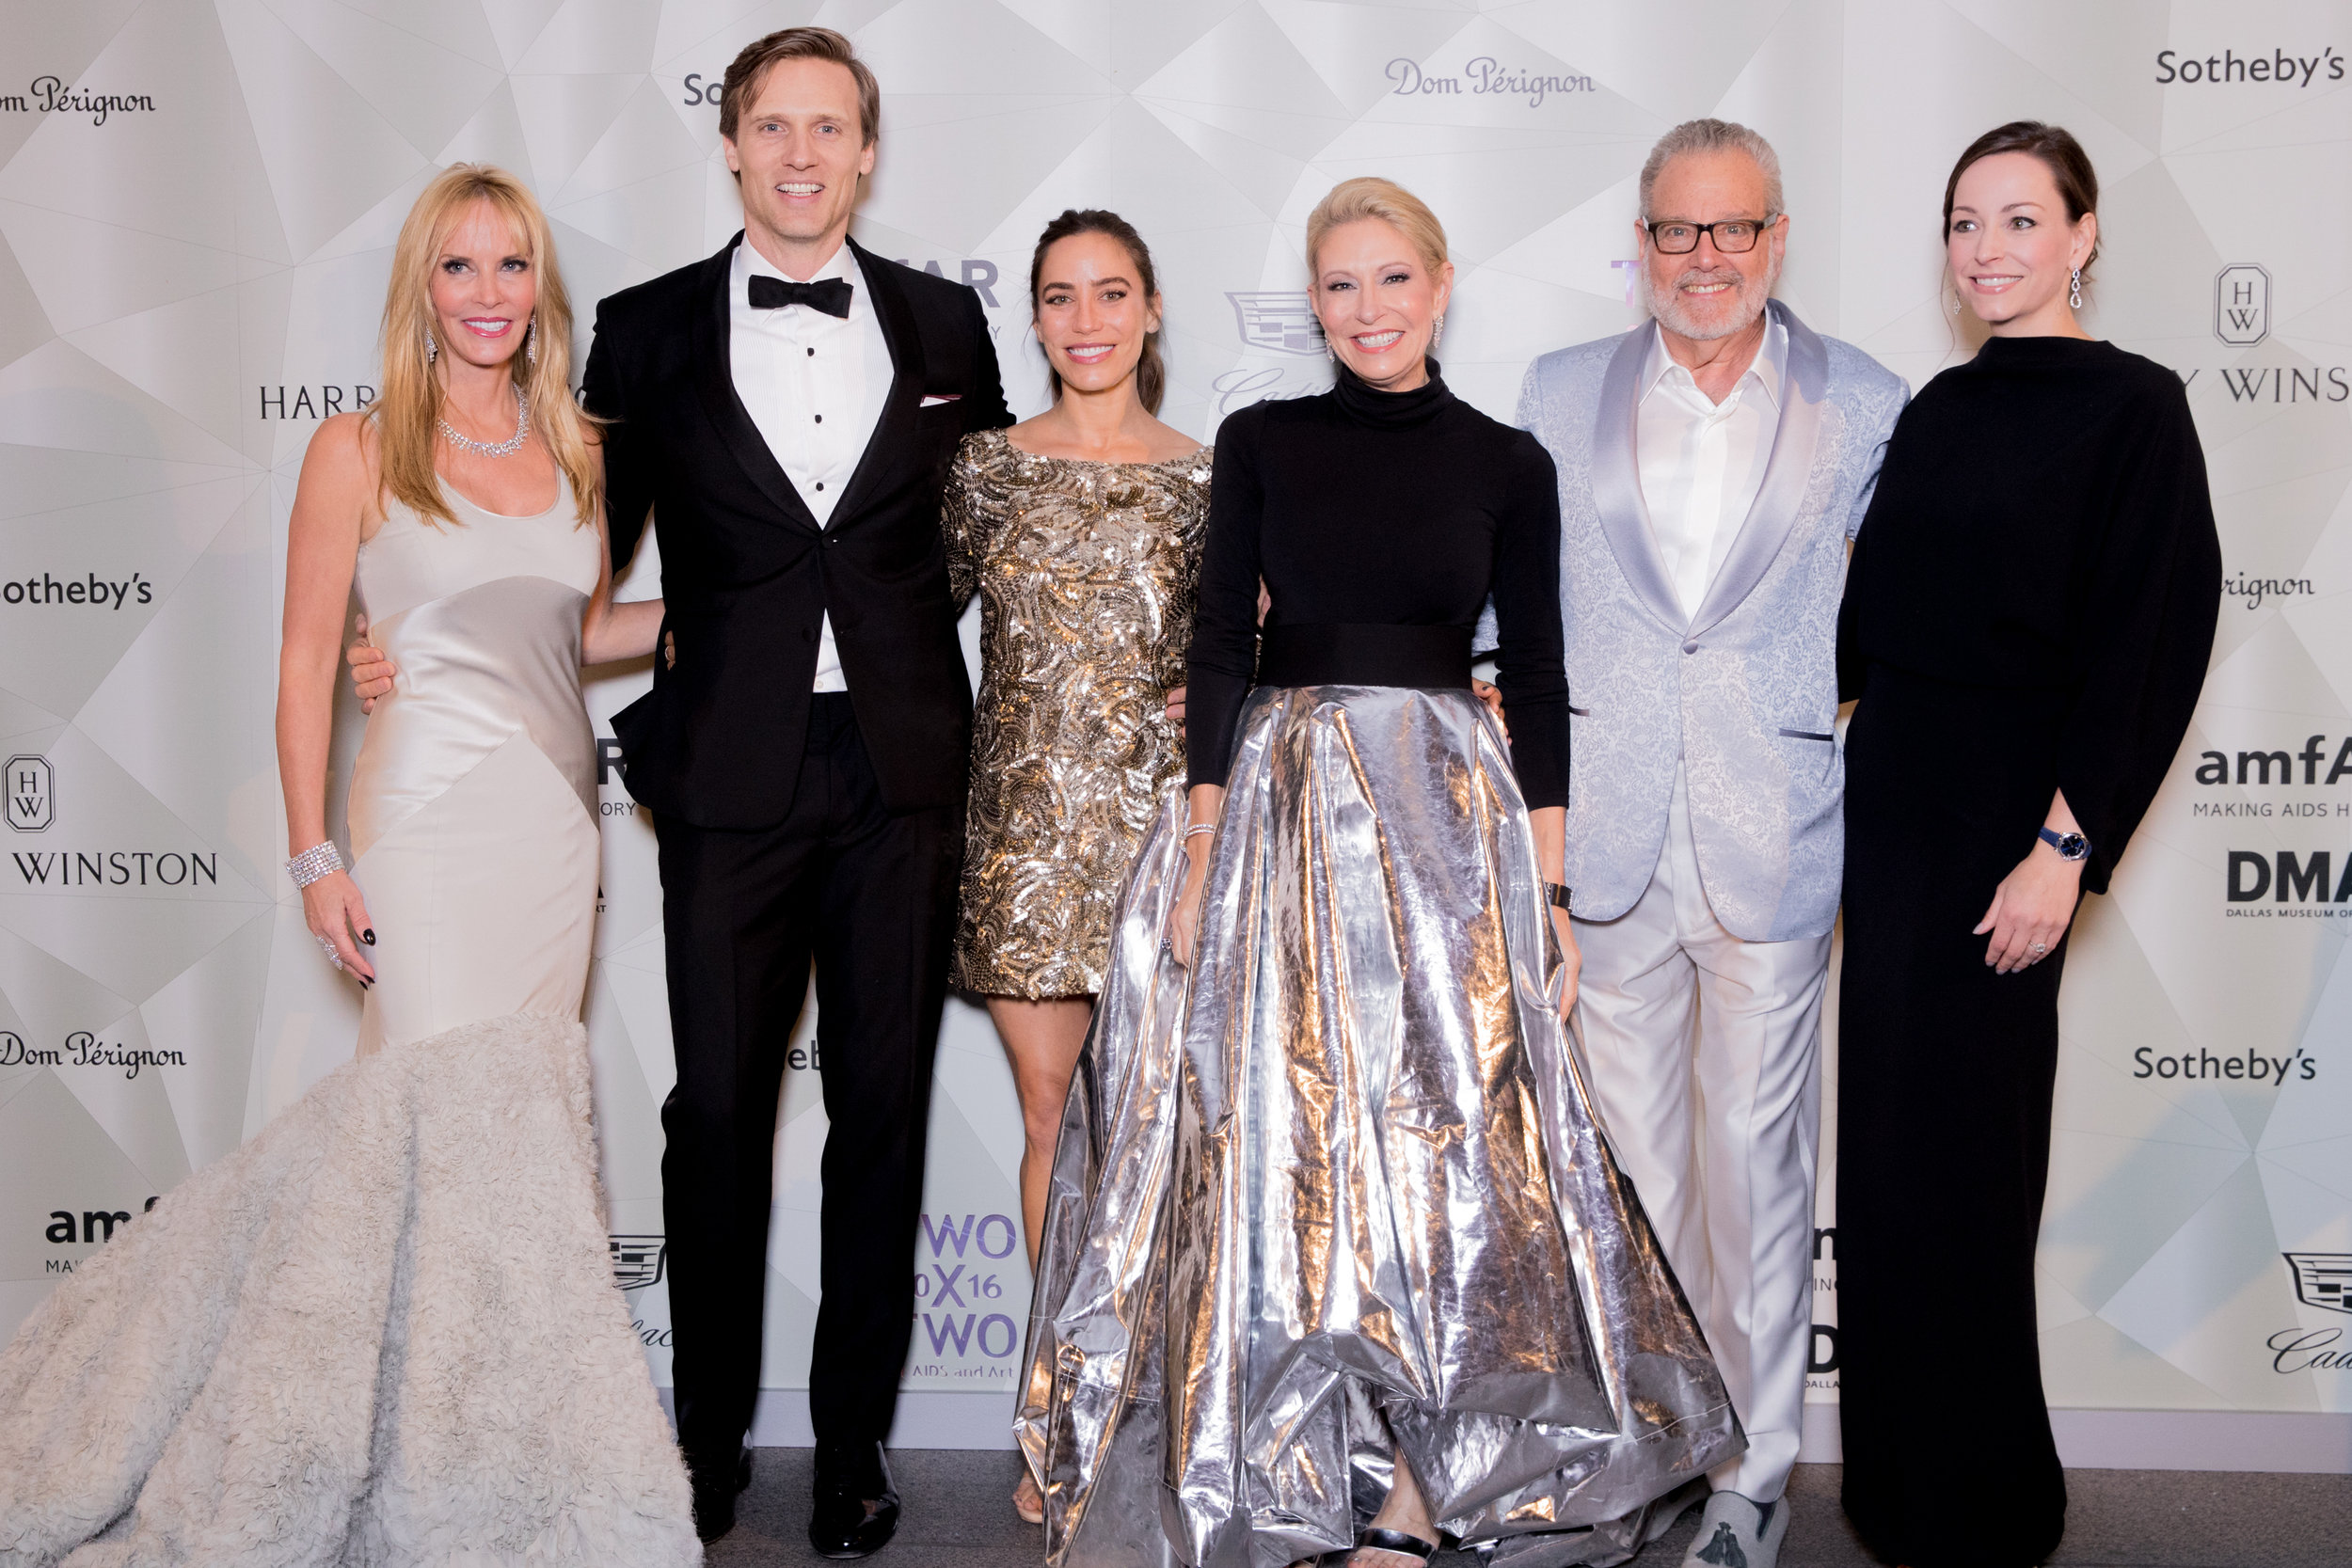 Nancy C. Rogers, Teddy Sears, Milissa Sears, Cindy Rachofsky, Howard Rachofsky, Melissa Ireland.jpg